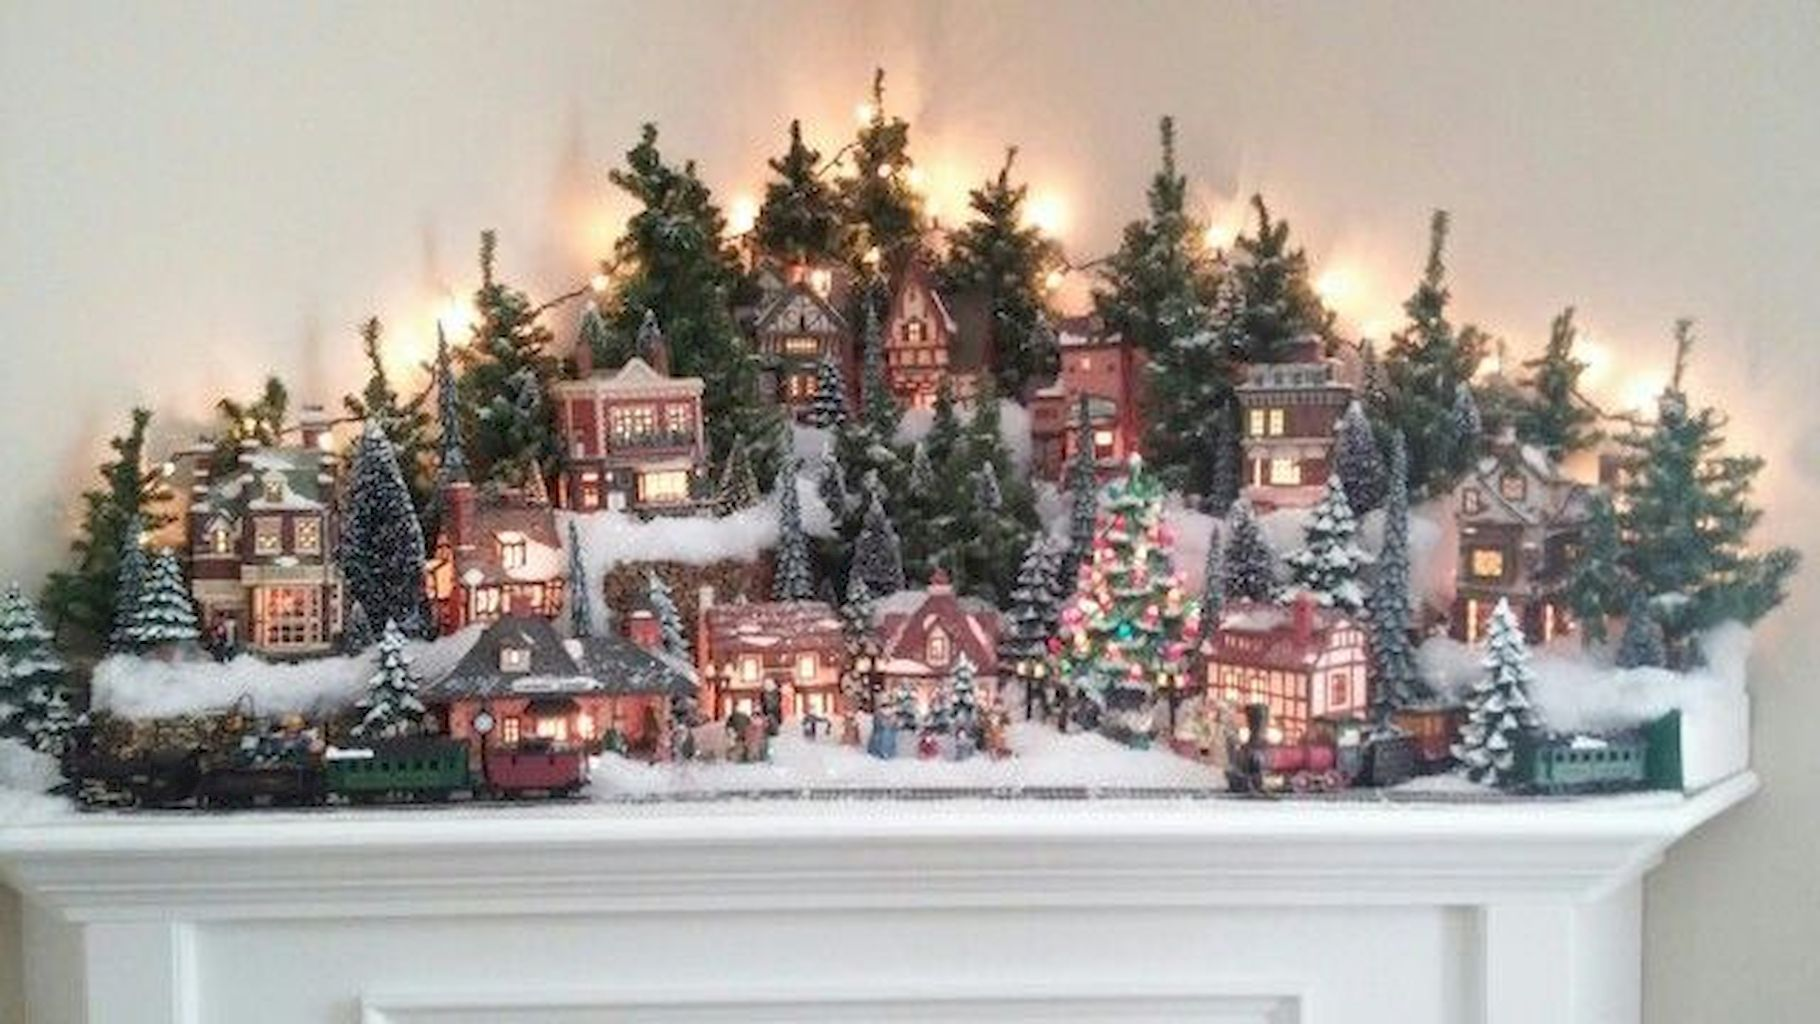 Christmas Village Window Display Ideas Home To Z Christmas Tree Village Diy Christmas Village Christmas Village Houses